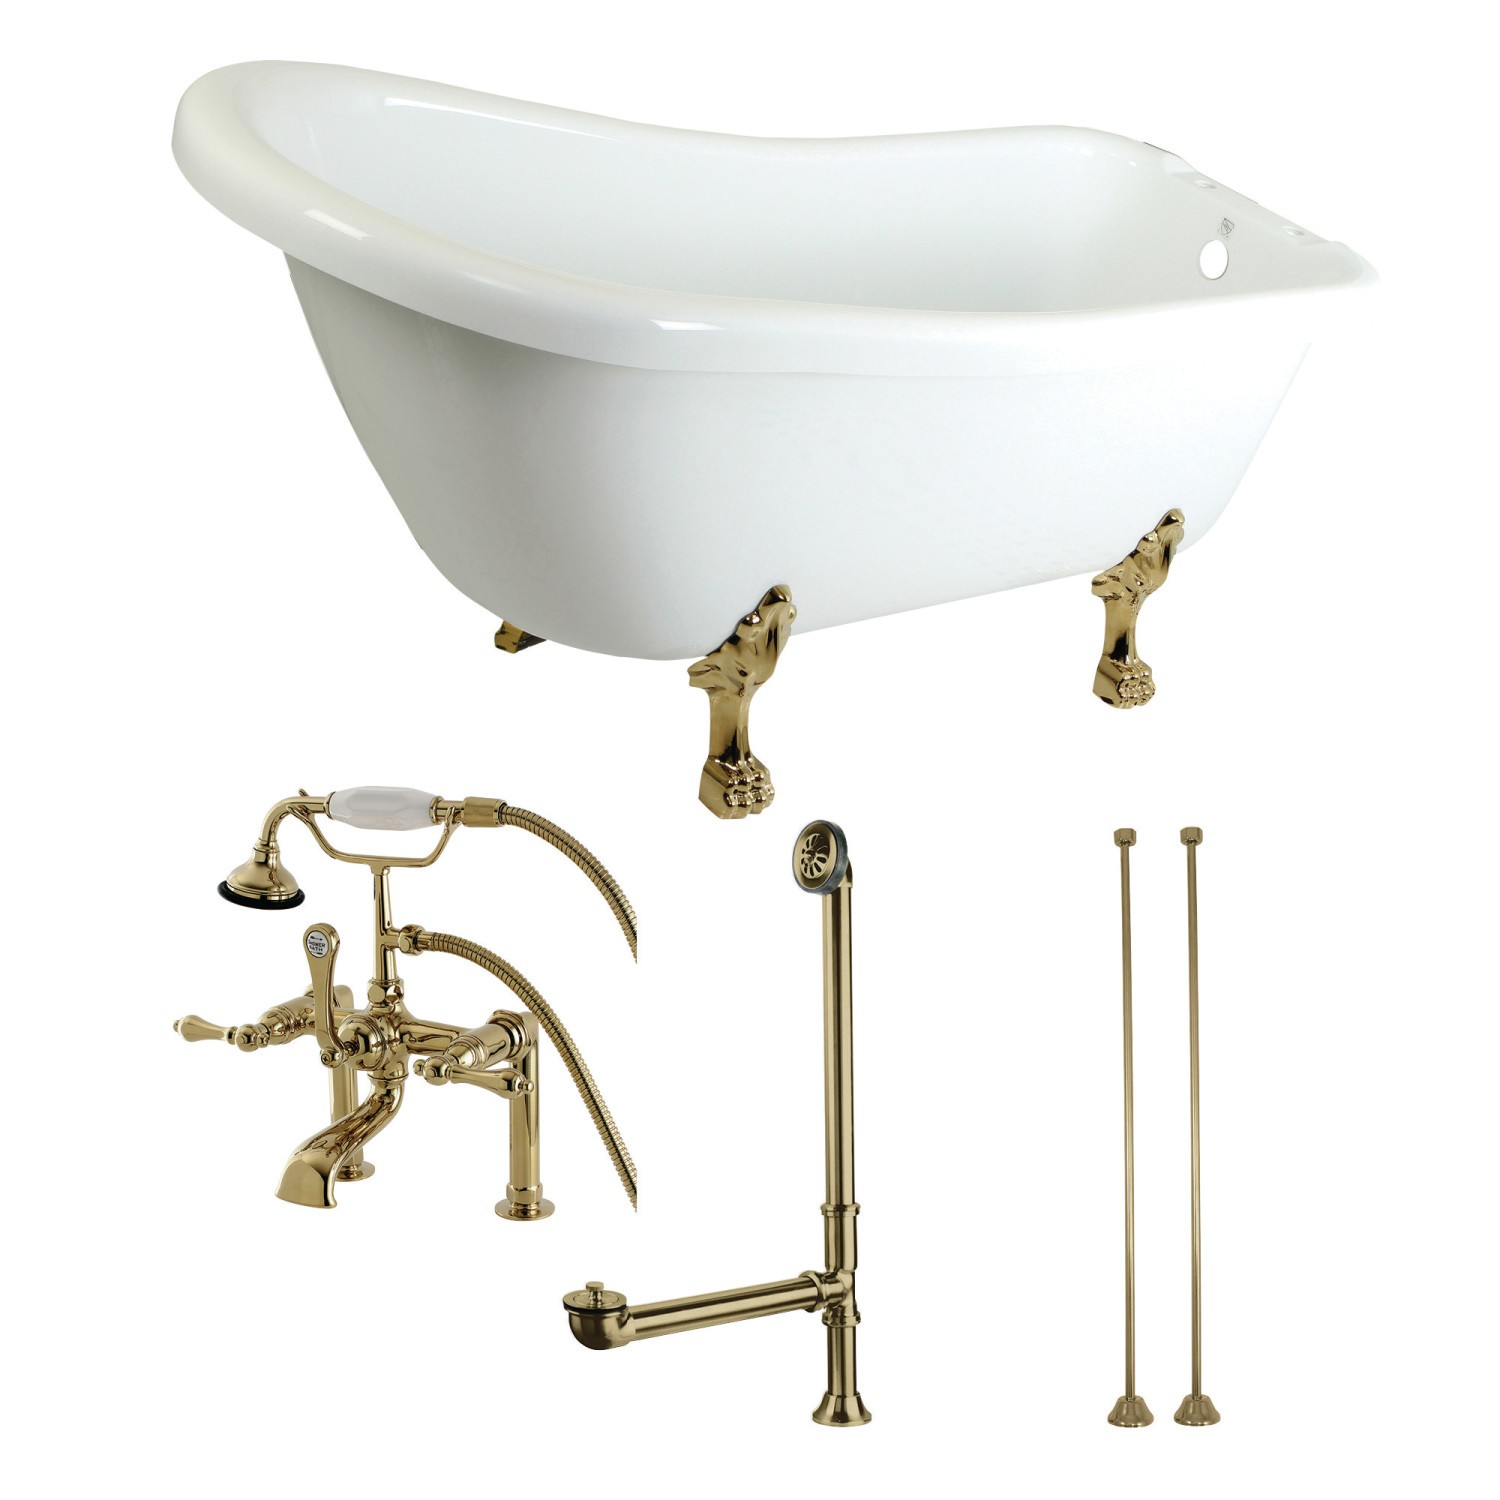 Kingston Brass Slipper 69-inch Acrylic Clawfoot Tub with Faucet Combo White//Brushed Nickel